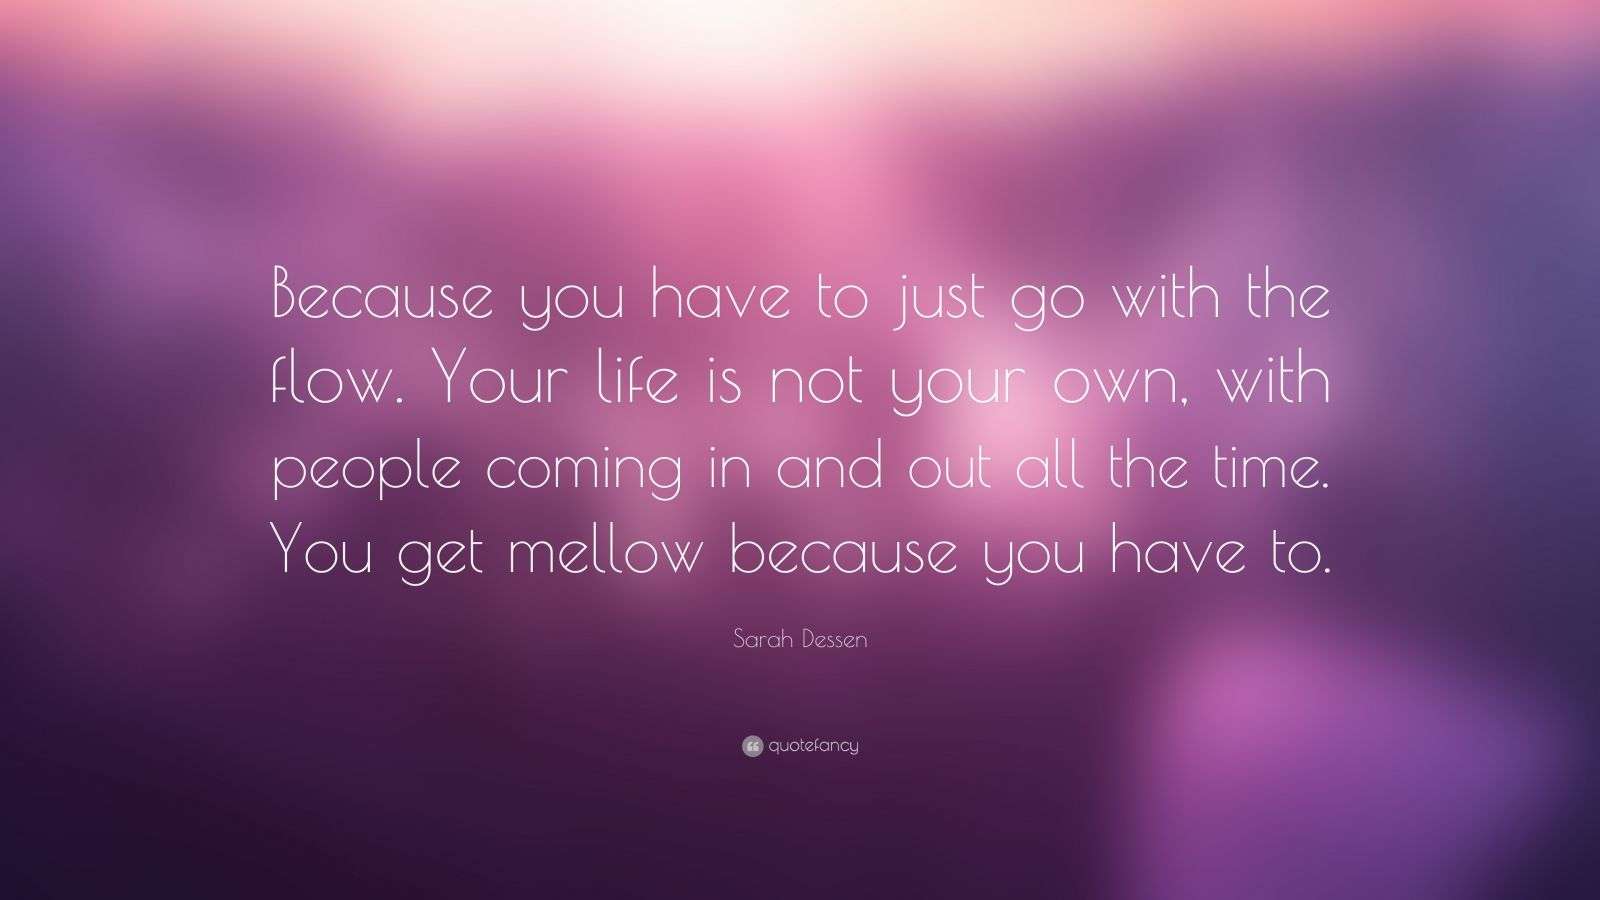 """Sarah Dessen Quote: """"Because you have to just go with the flow. Your life is not your own, with people coming in and out all the time. You get mellow because you have to."""""""